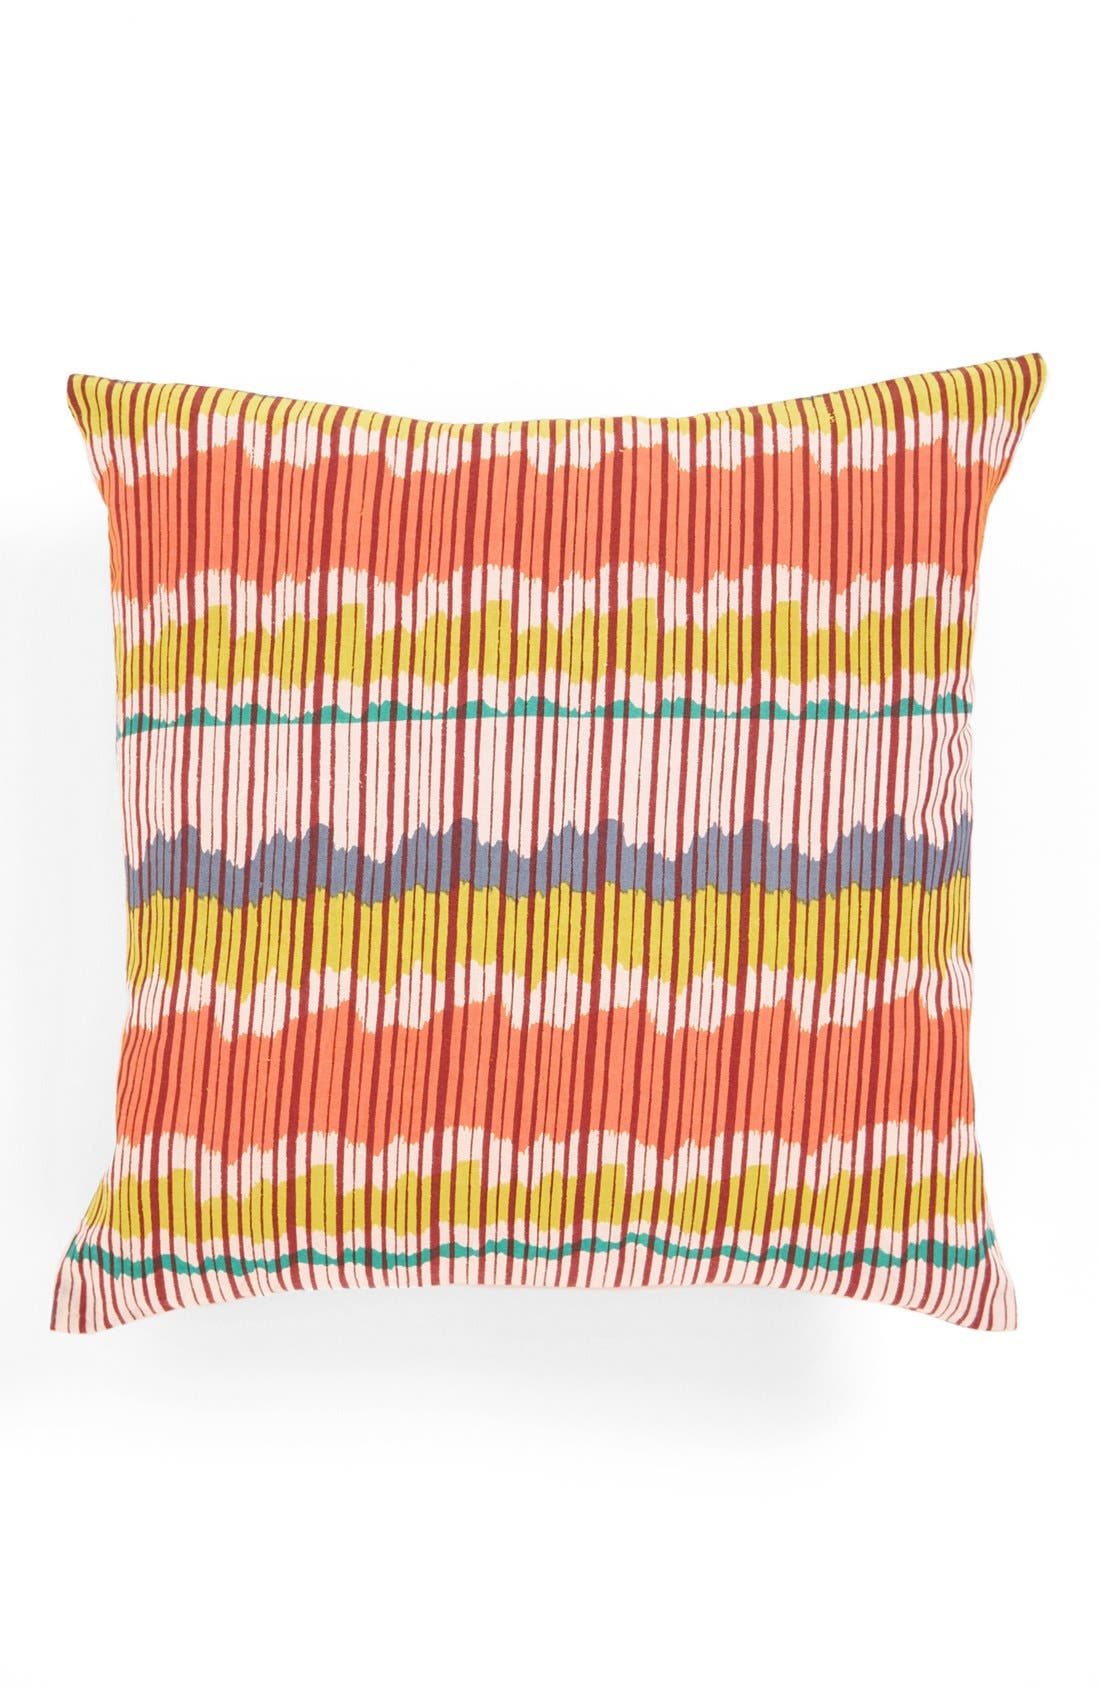 Alternate Image 1 Selected - Rizzy Home 'Felicity' Pillow